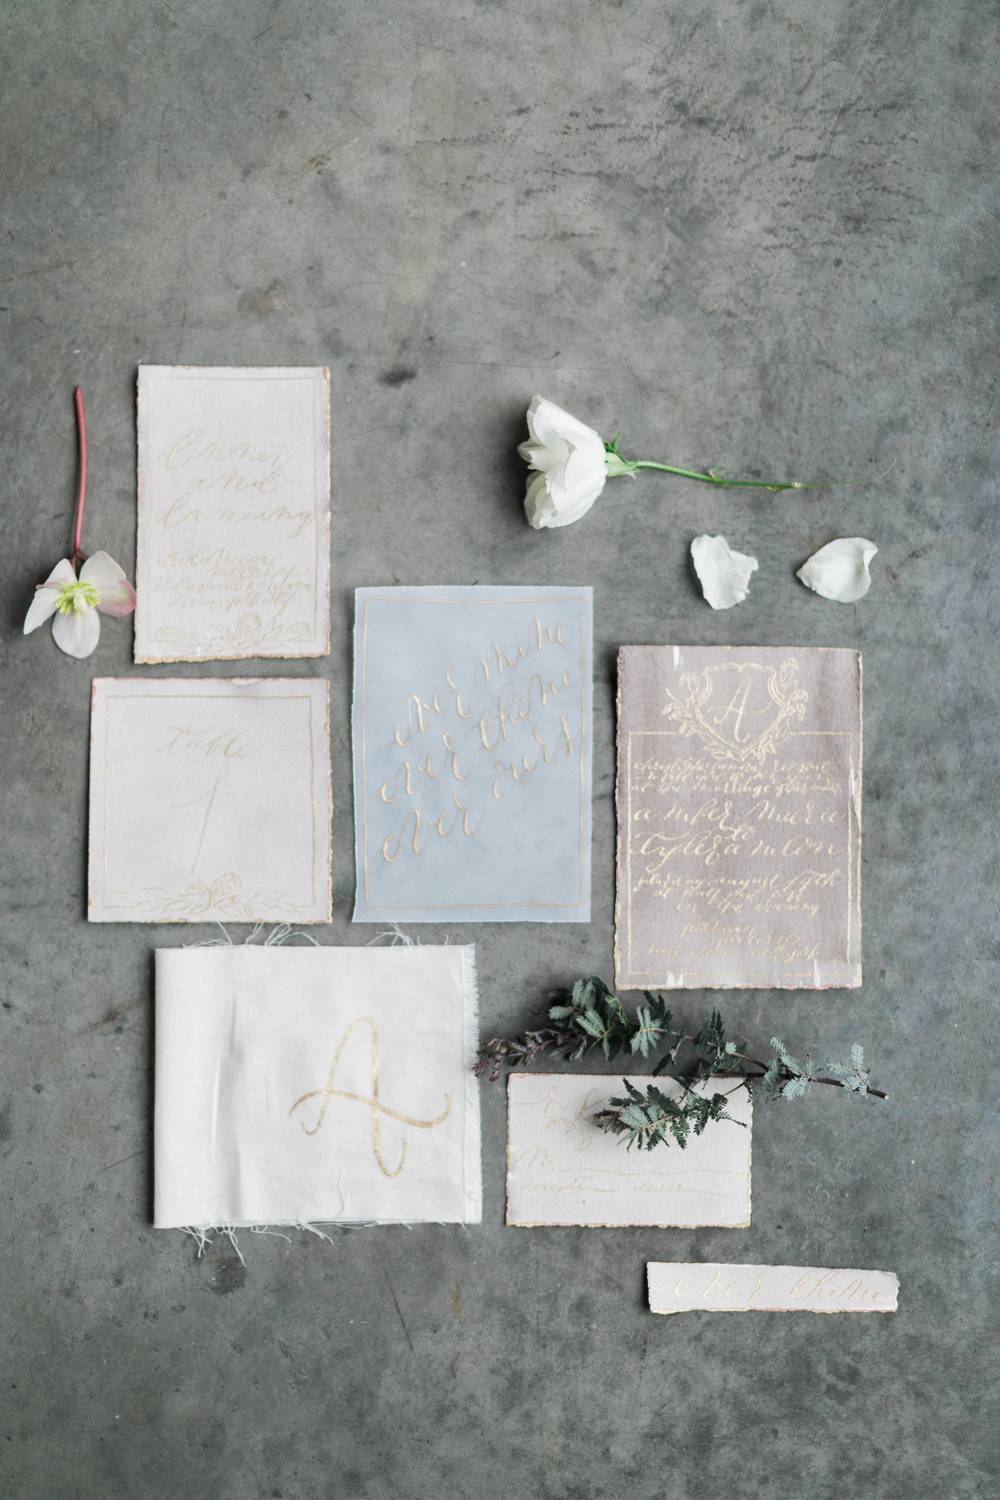 Moira Design Studio | Design House of Moira